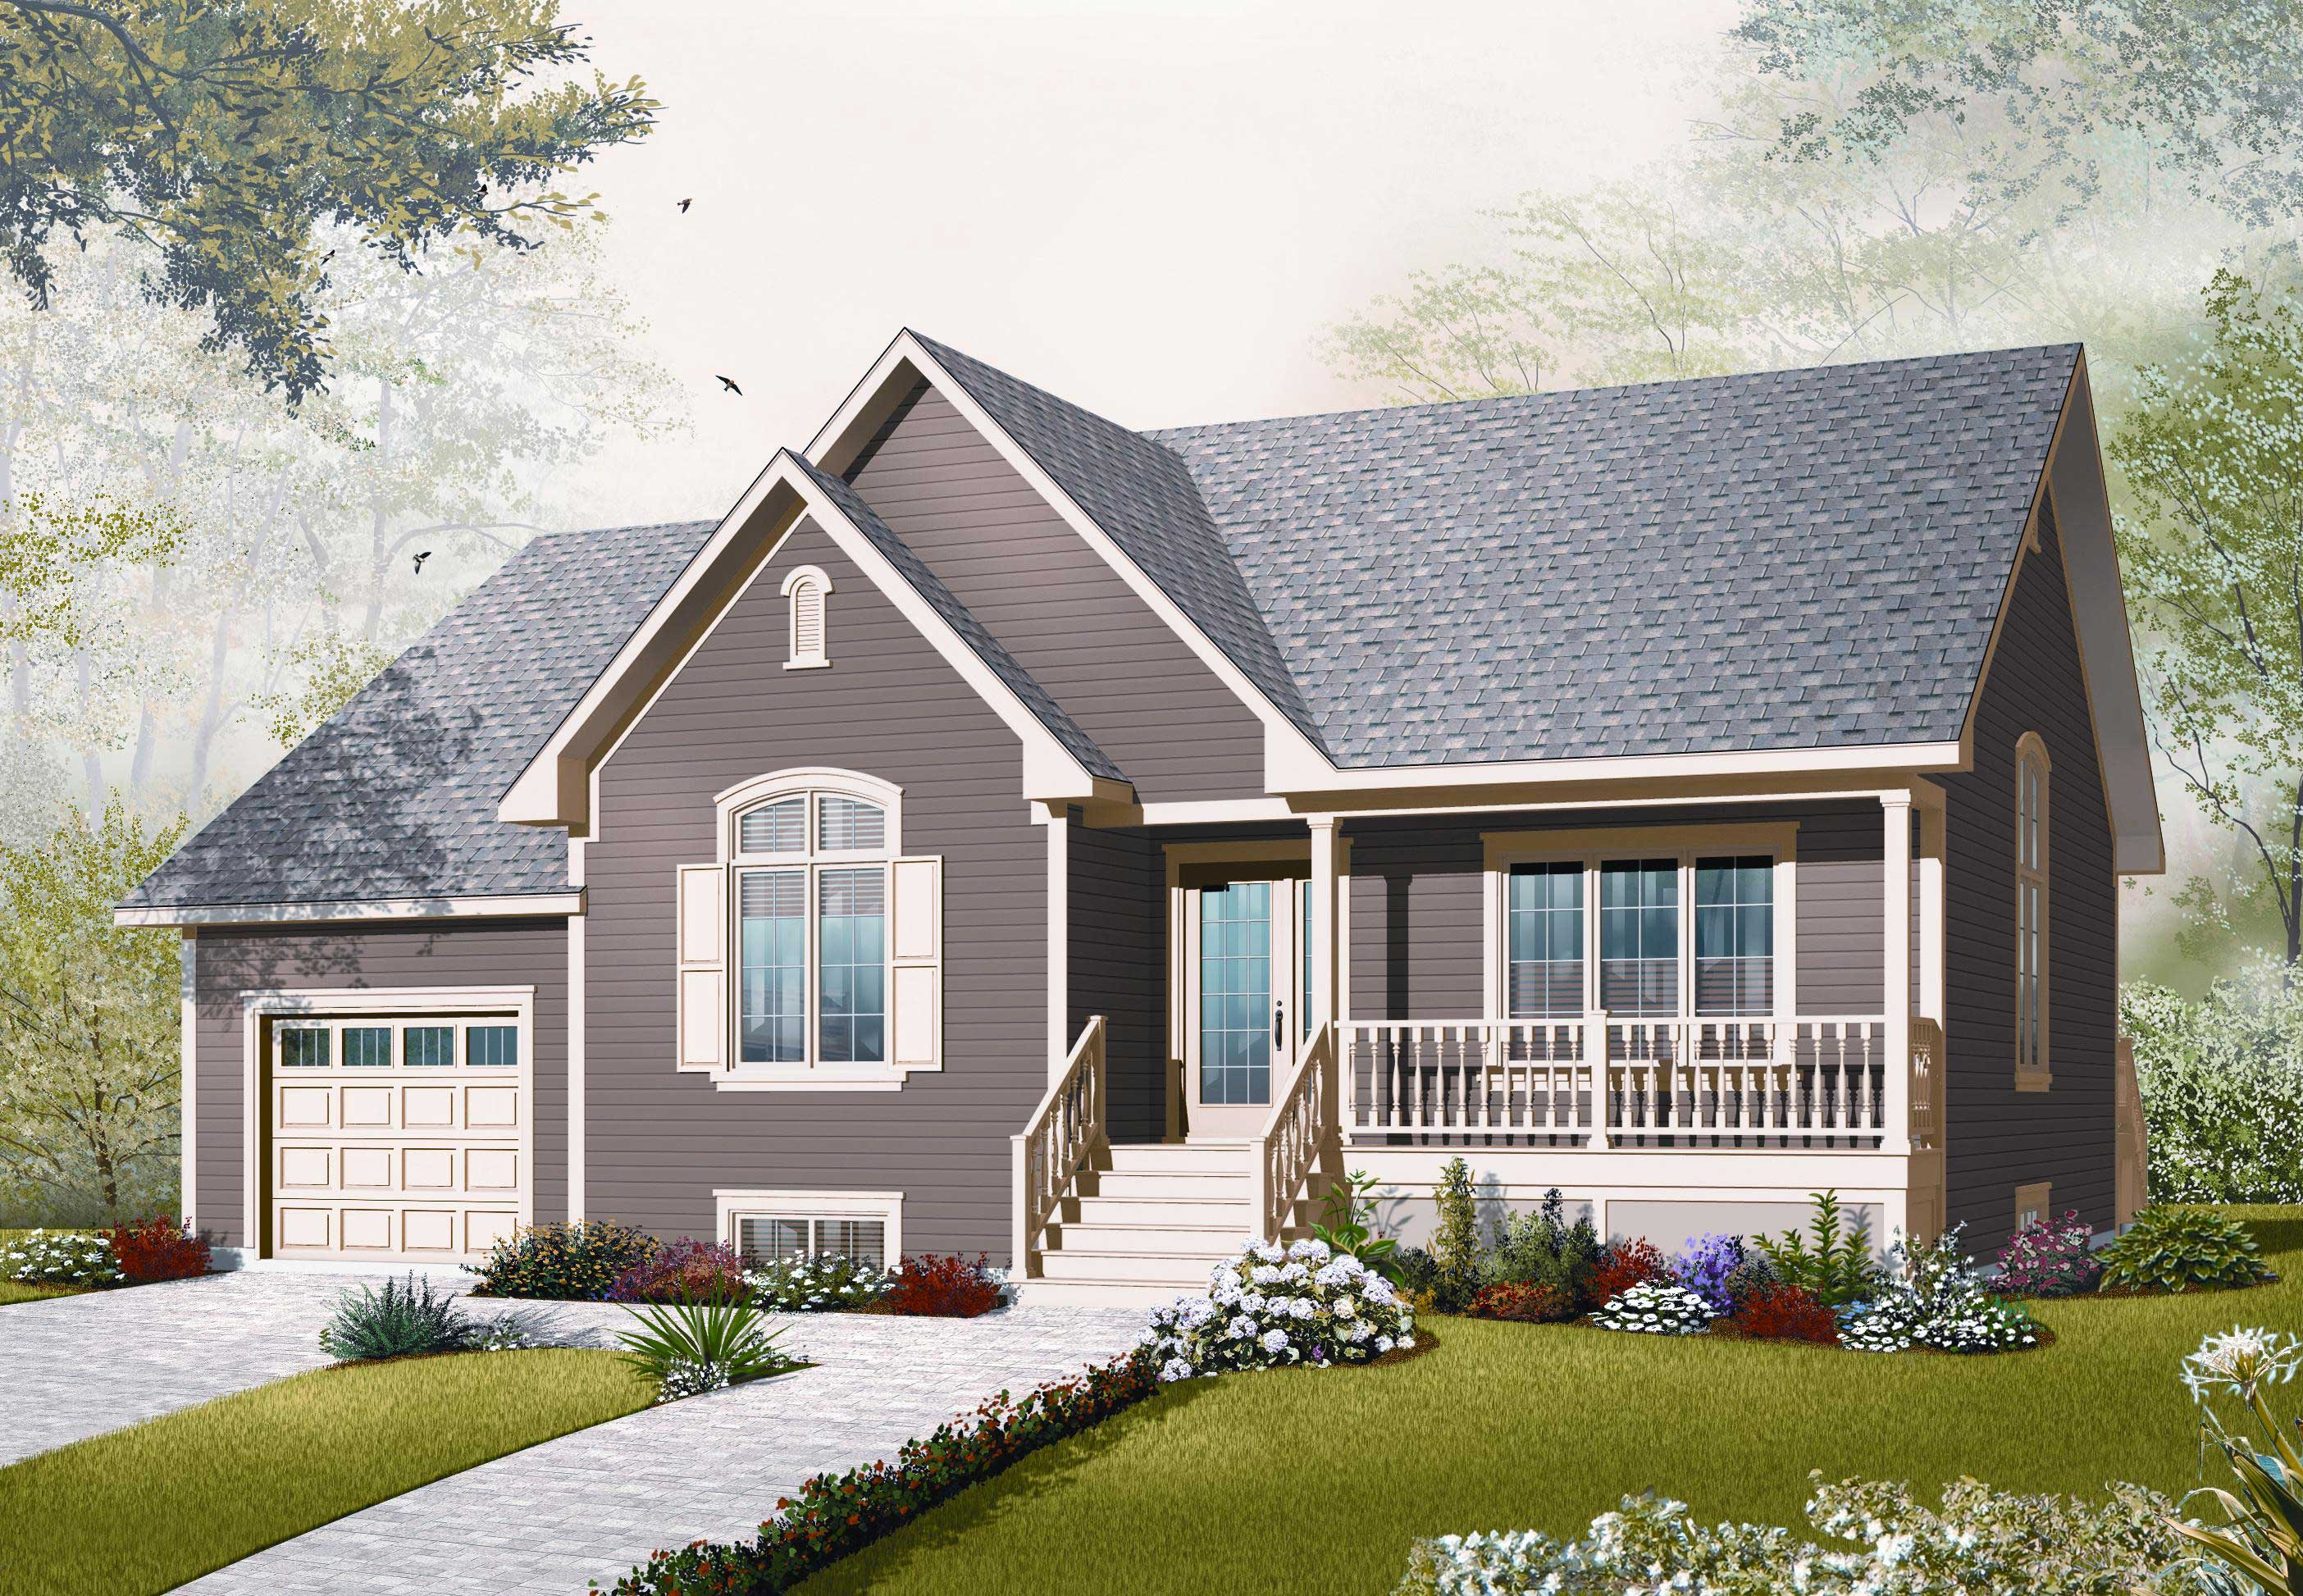 3261 Final - Download Design For Small Houses Pictures